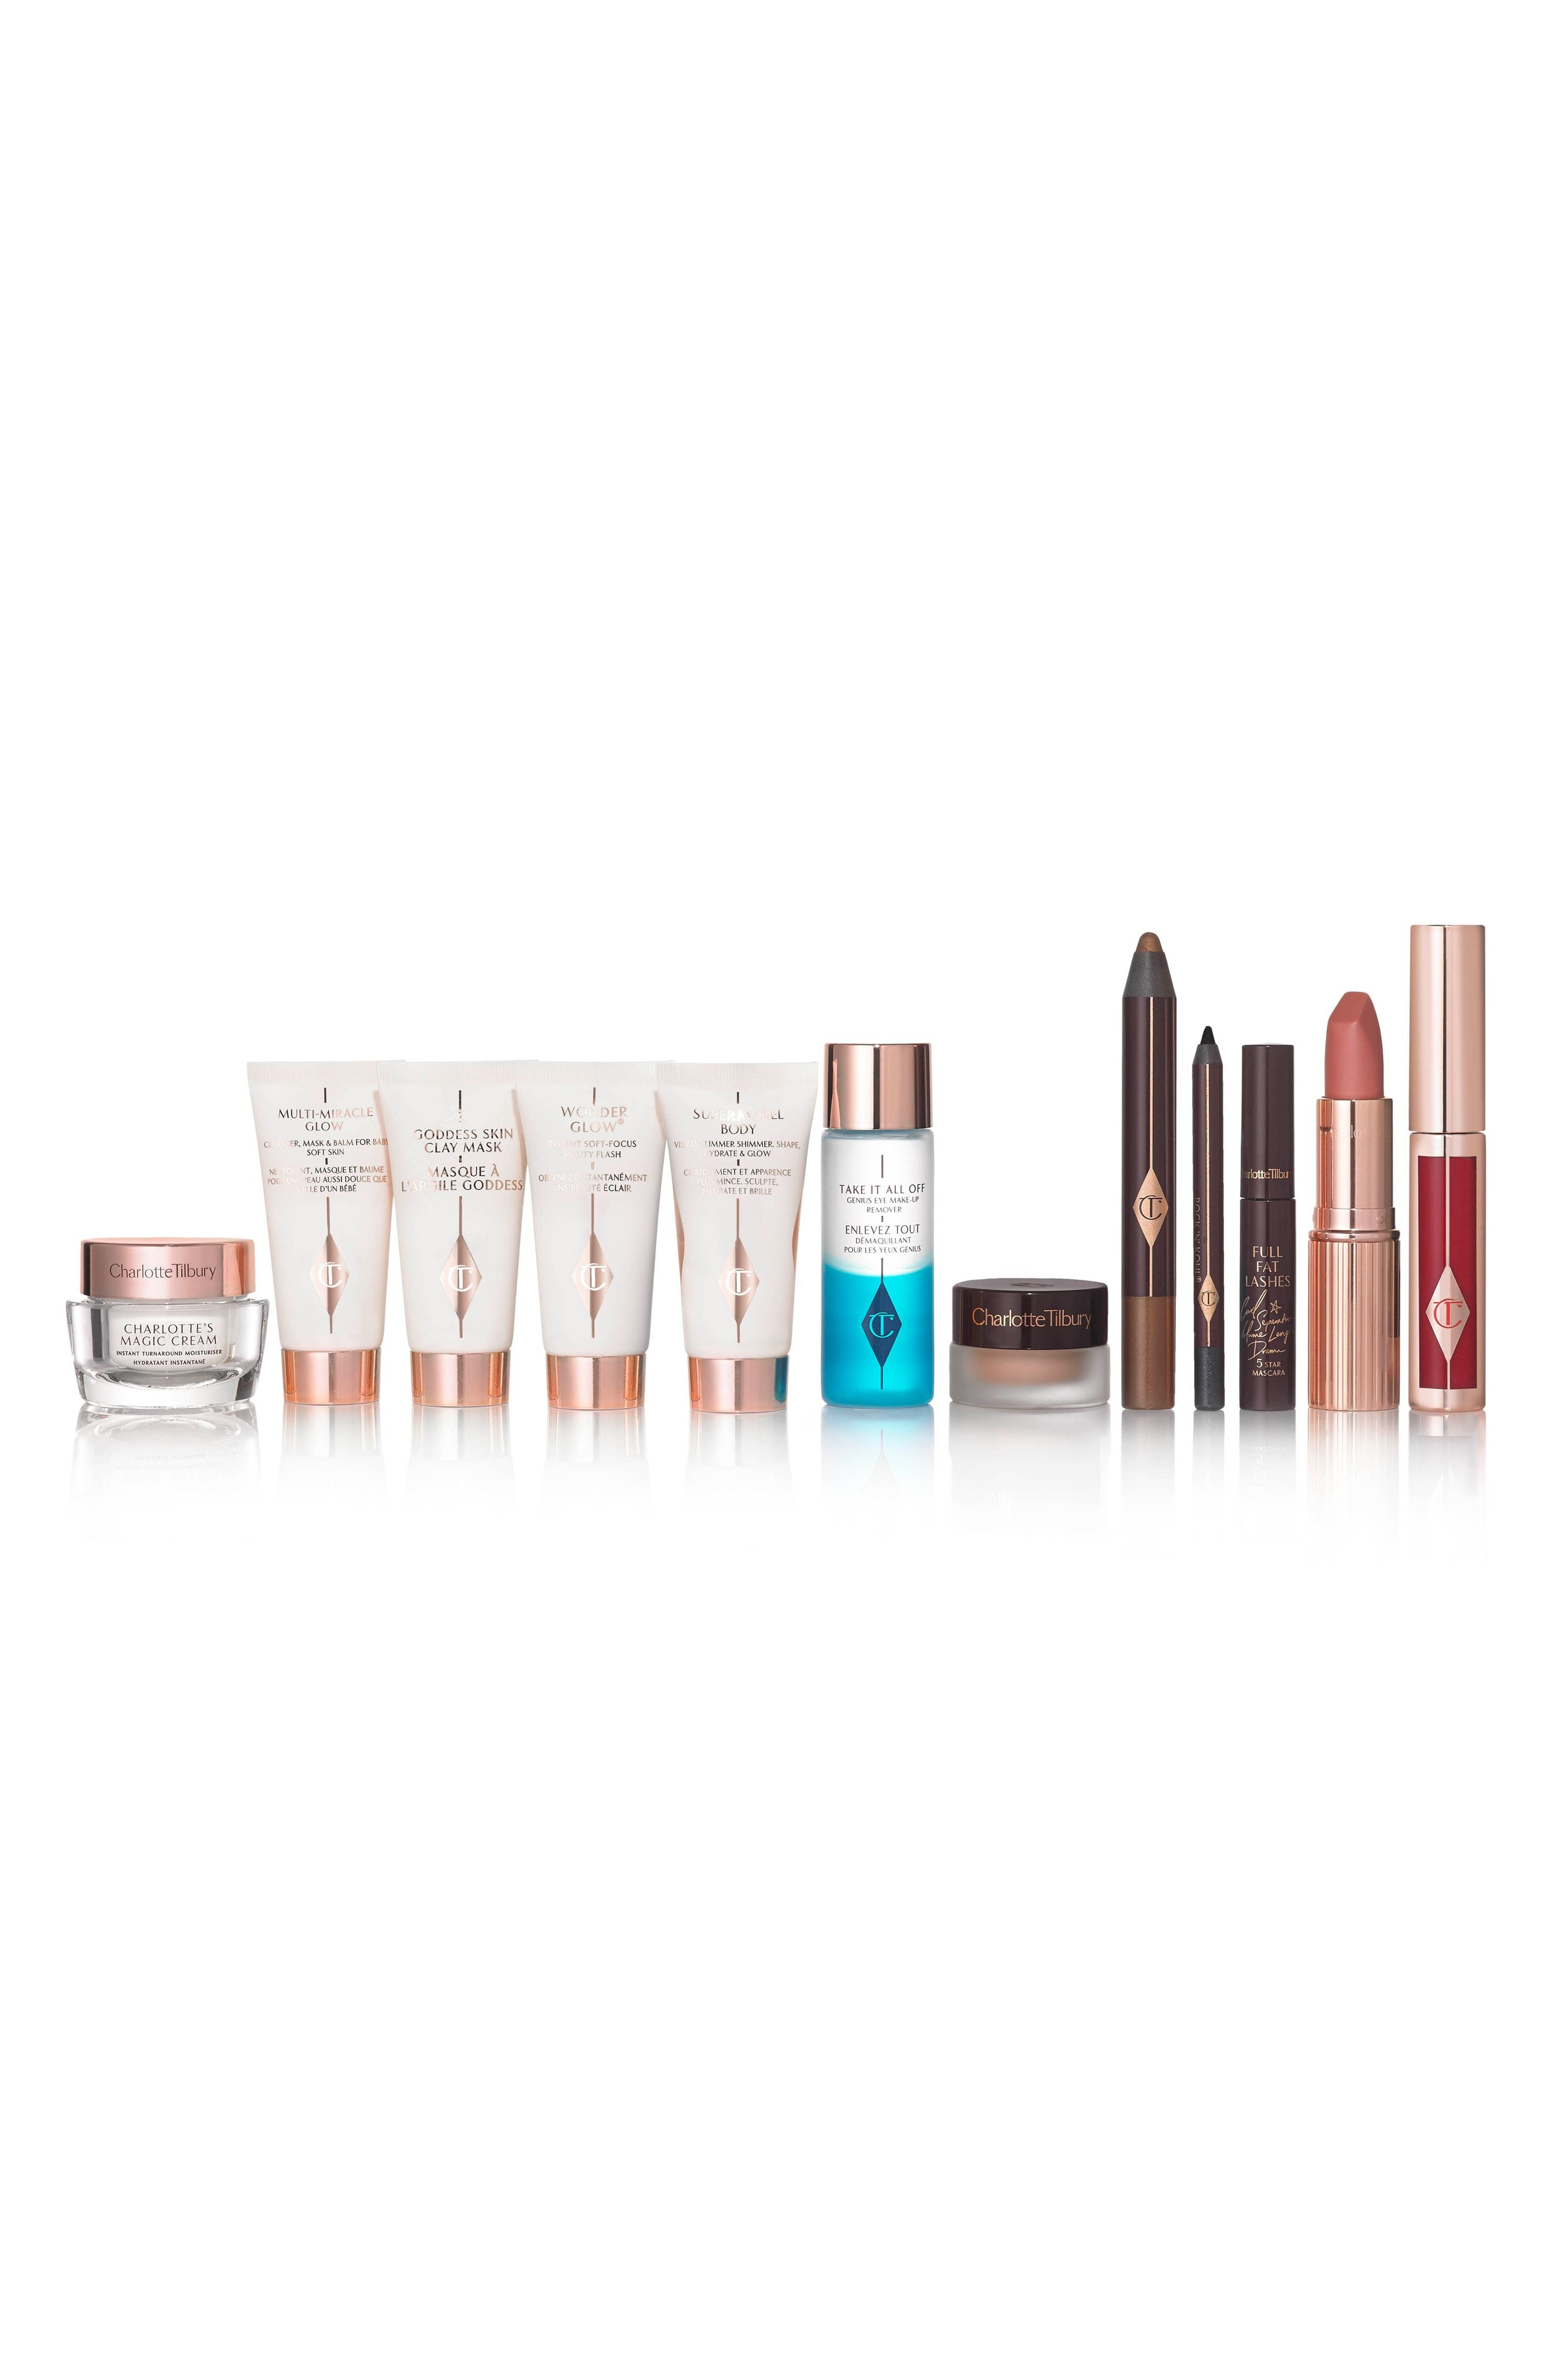 6de2119e881 30+ Best Beauty Gifts in 2018 - Makeup and Perfume Gift Ideas for Her